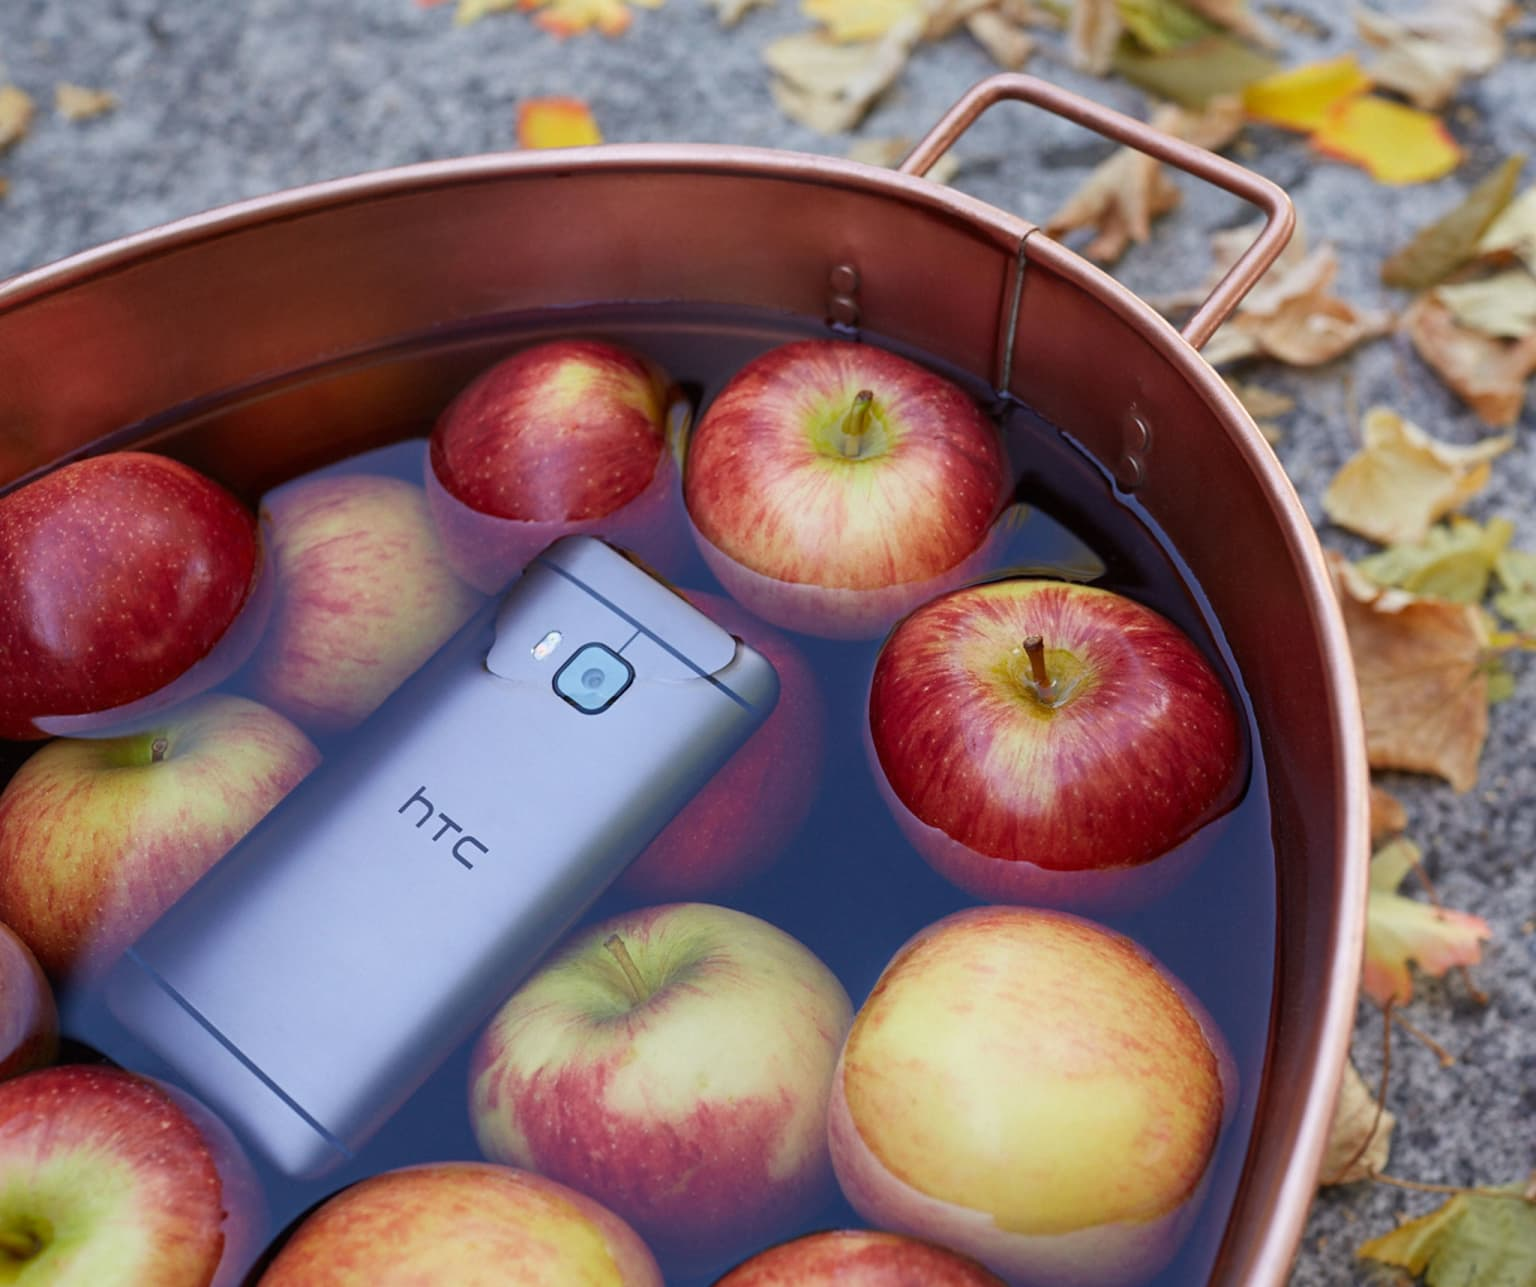 HTC: Uh Oh Protection